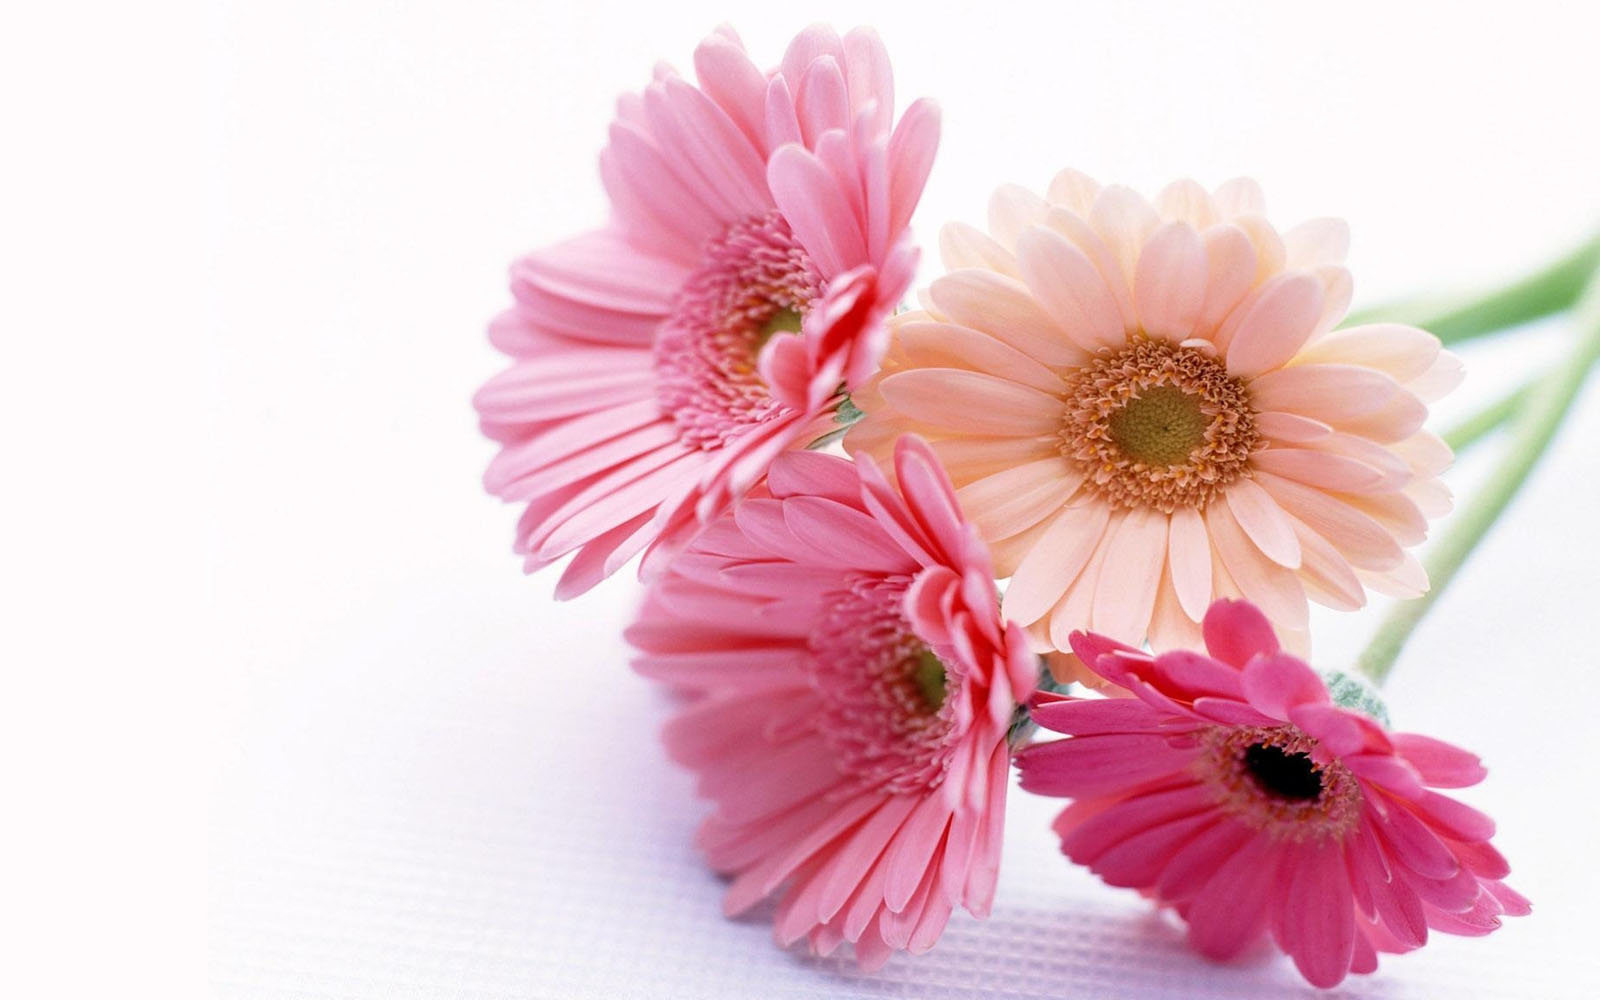 Wallpapers gerbera flowers wallpapers - Wallpaper photos ...